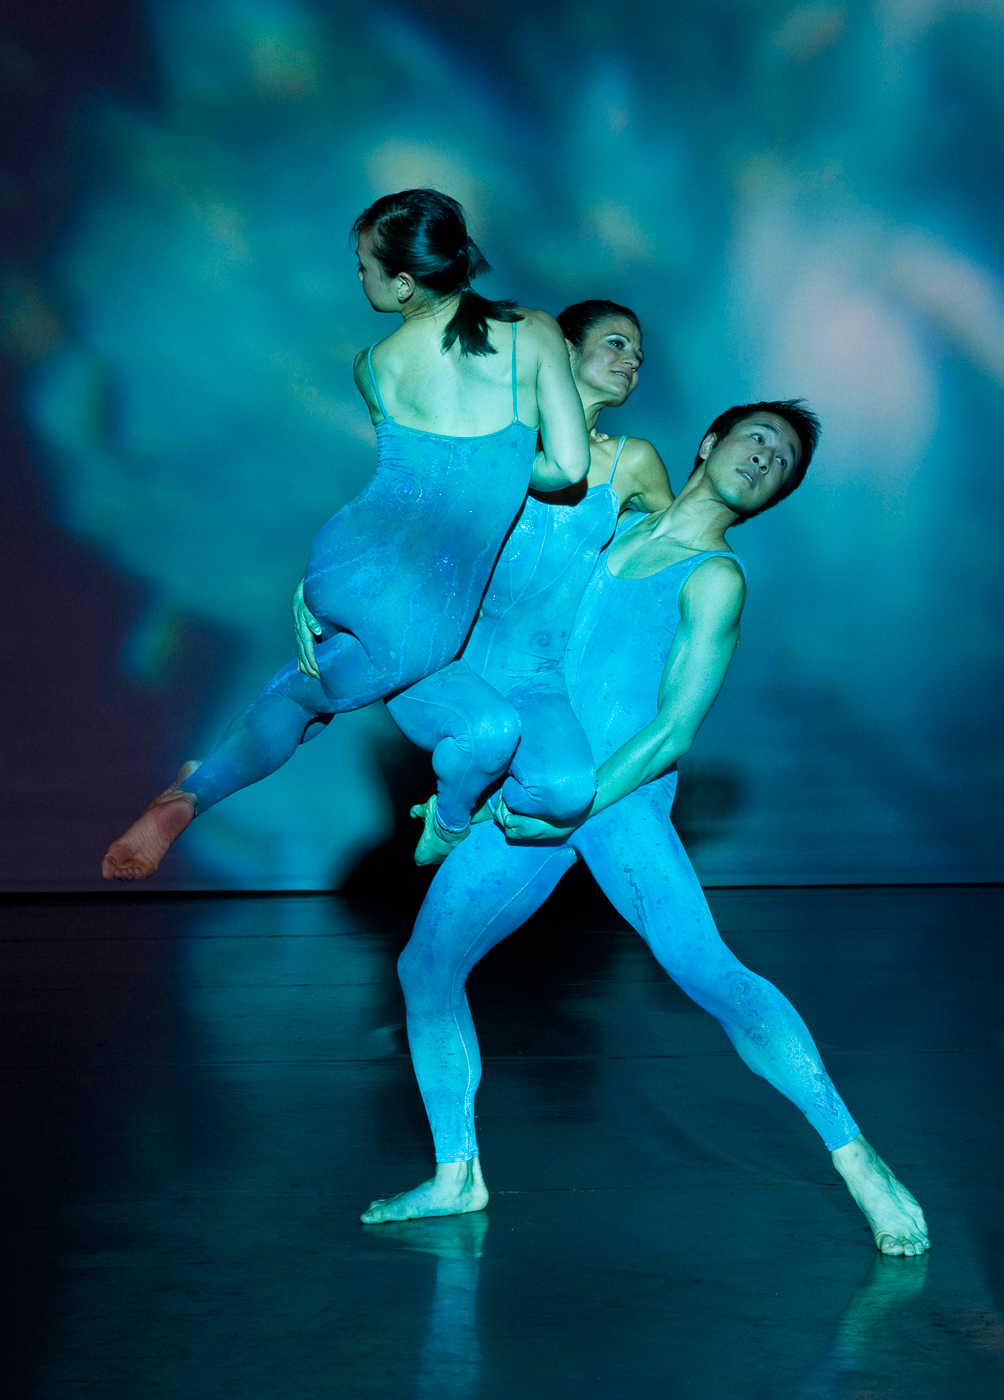 Three dancers dependent on one another, as in the food web.<div class='credit'><strong>Credit:</strong> Three dancers dependent on one another, as in the food web.</div>